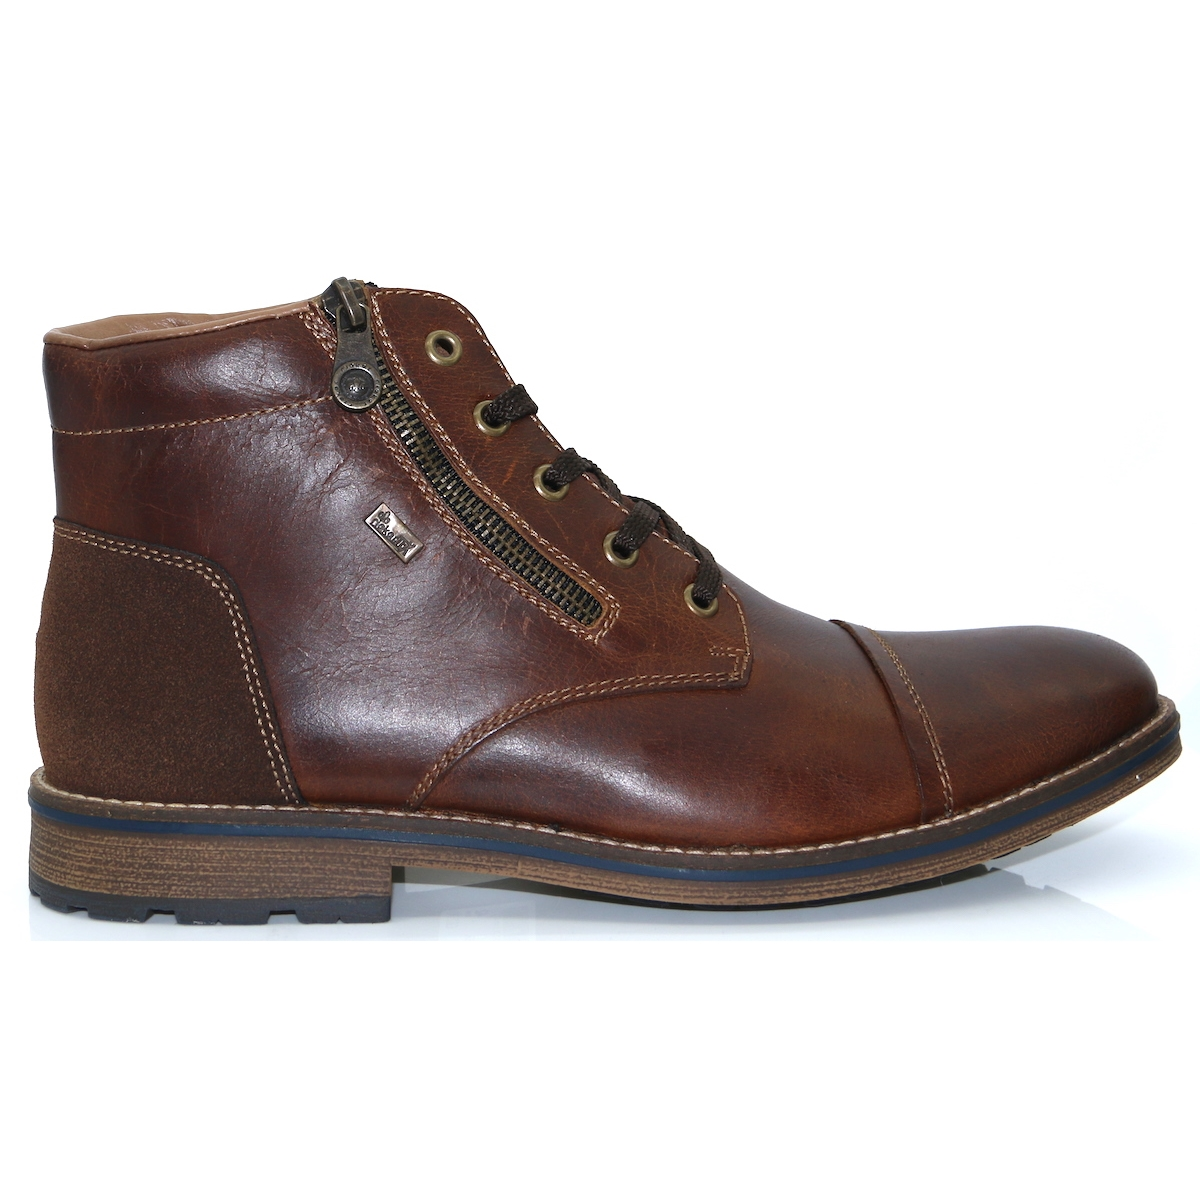 bf544d8759304 F5530-25 - RIEKER DARK BROWN ANKLE BOOTS - Panache Shoe Company